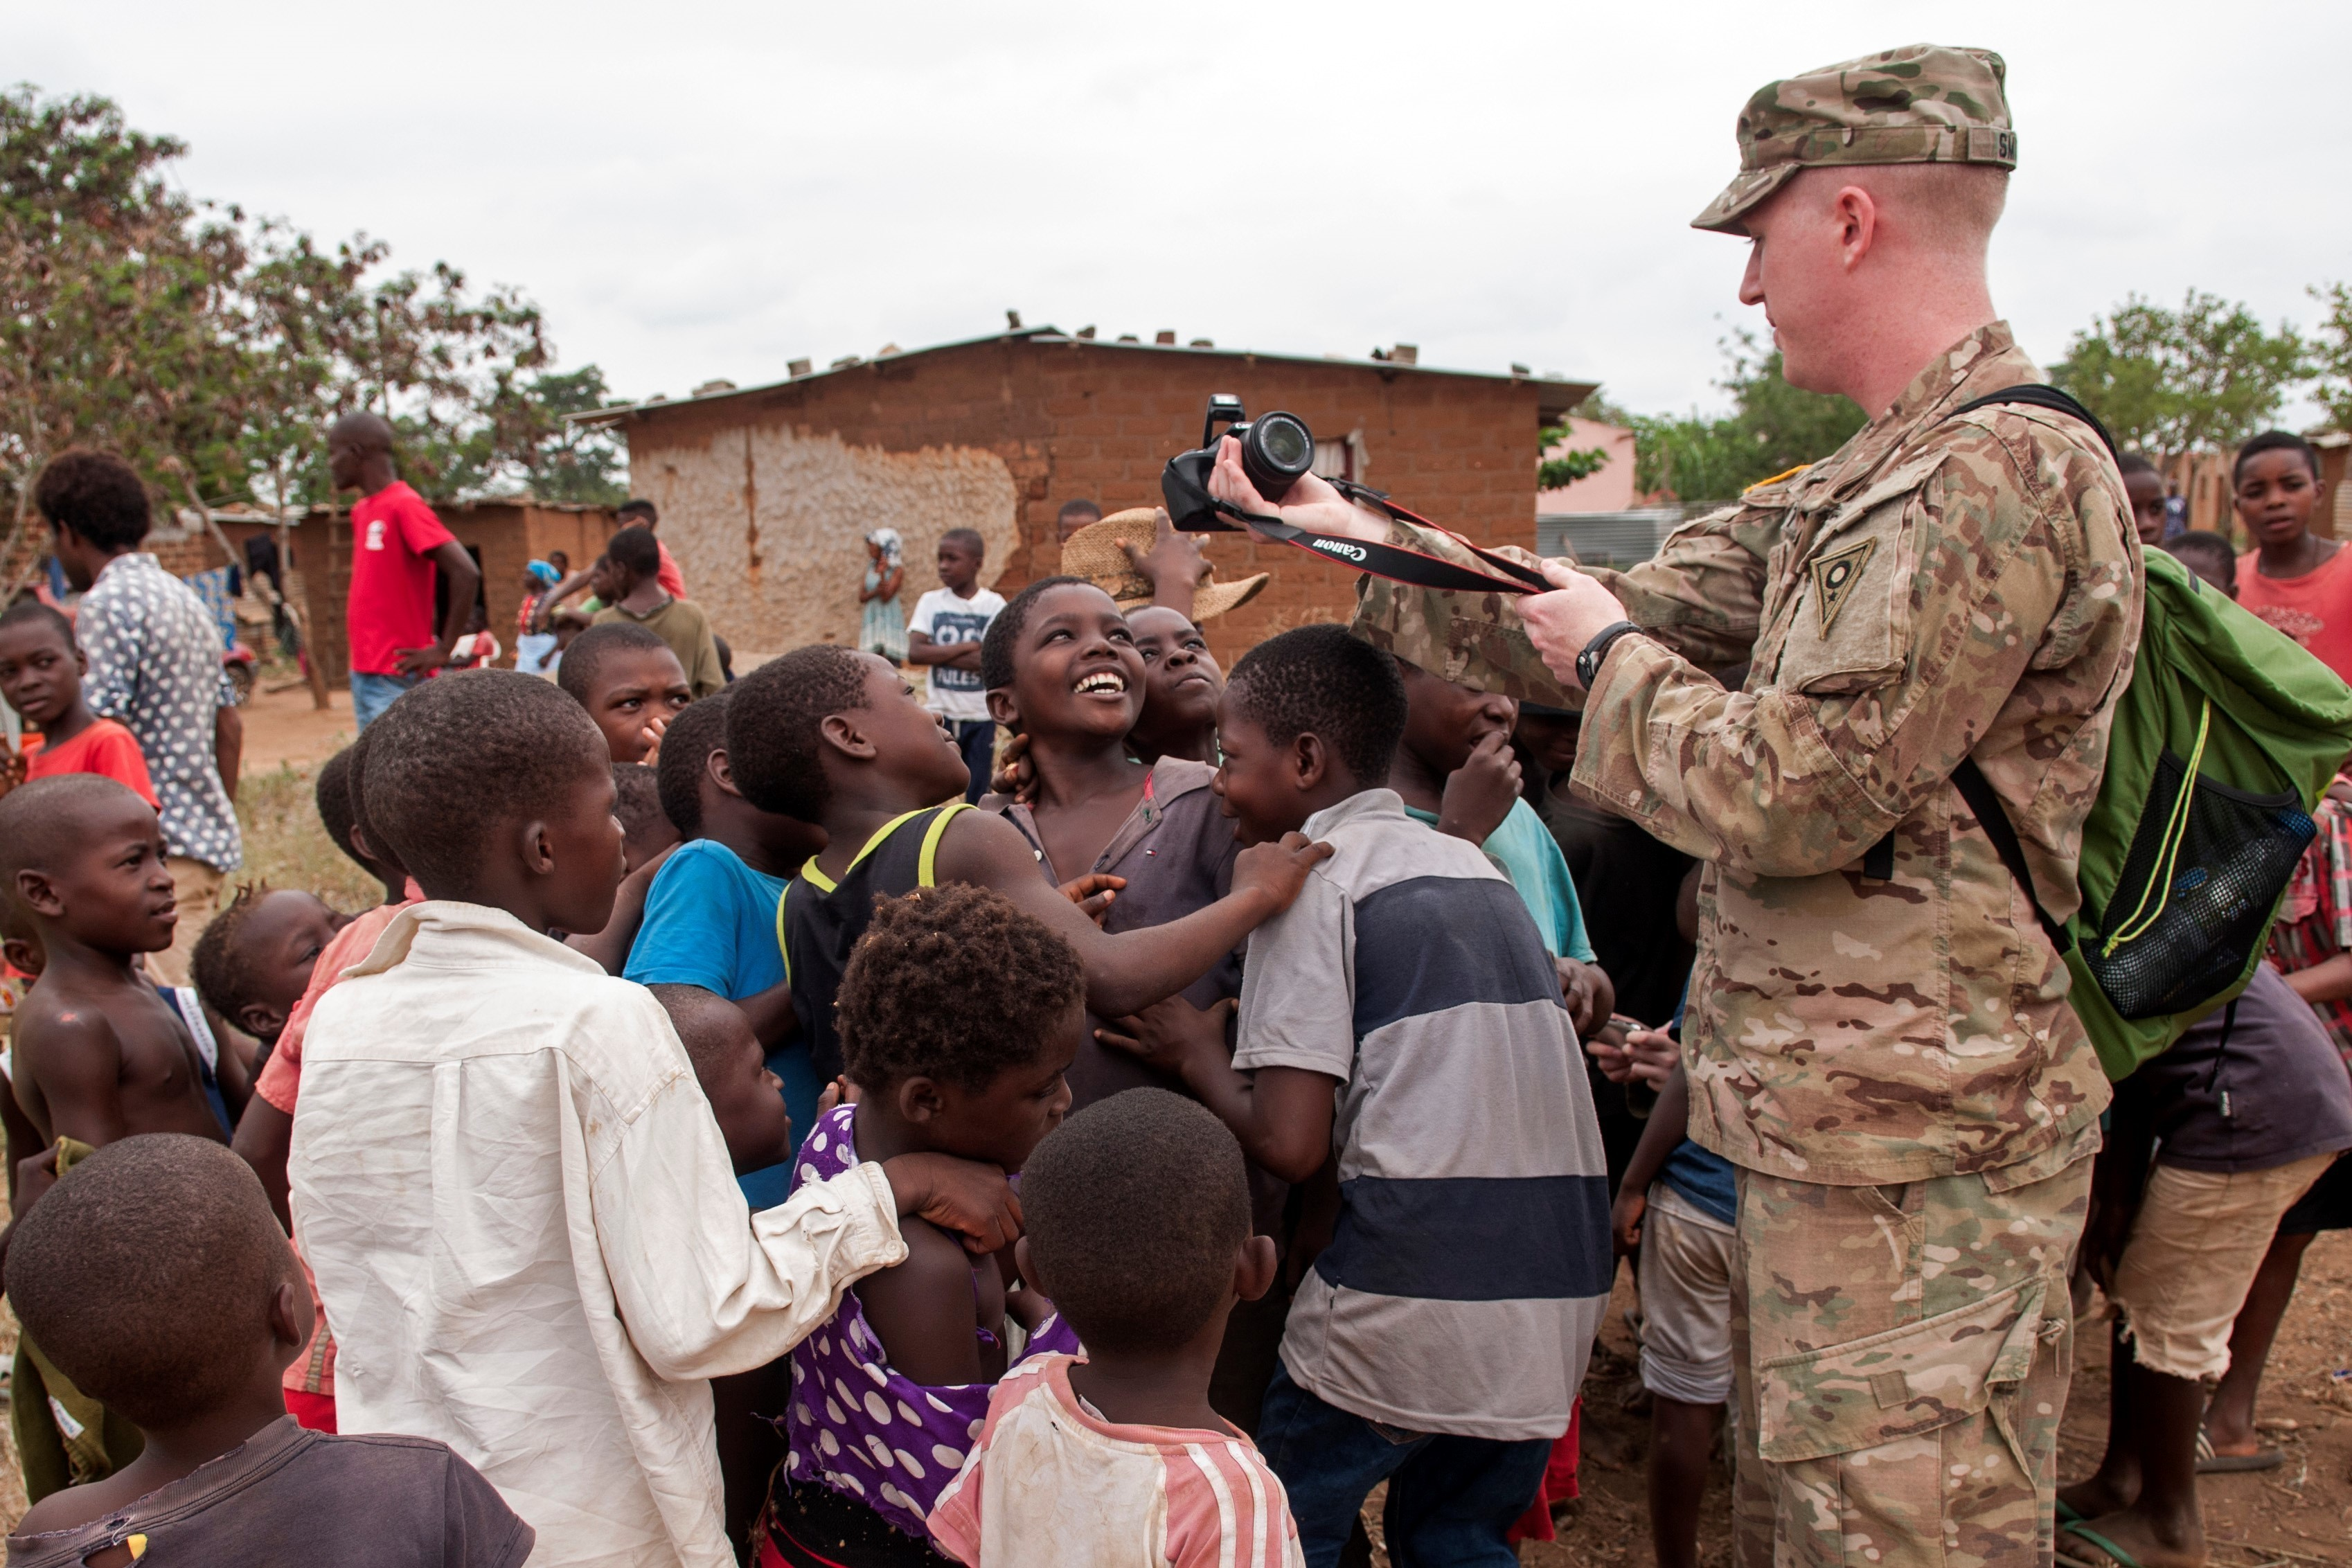 Sgt. Zachary Smith, an Ohio Army National Guard medic participating in PAMBALA 2017, interacts with the local children in the village of Vale do Paraiso Dec. 9, 2017, in Bengo, Angola. PAMBALA, the first-ever trilateral combined medical engagement to take place in the Republic of Angola, is an agreement between the Angolan Armed Forces, Serbian Armed Forces and the Ohio National Guard to share best practices, strengthen medical treatment processes, establish new relationships and nurture established partnerships. (Ohio National Guard photo by Staff Sgt. Wendy Kuhn)